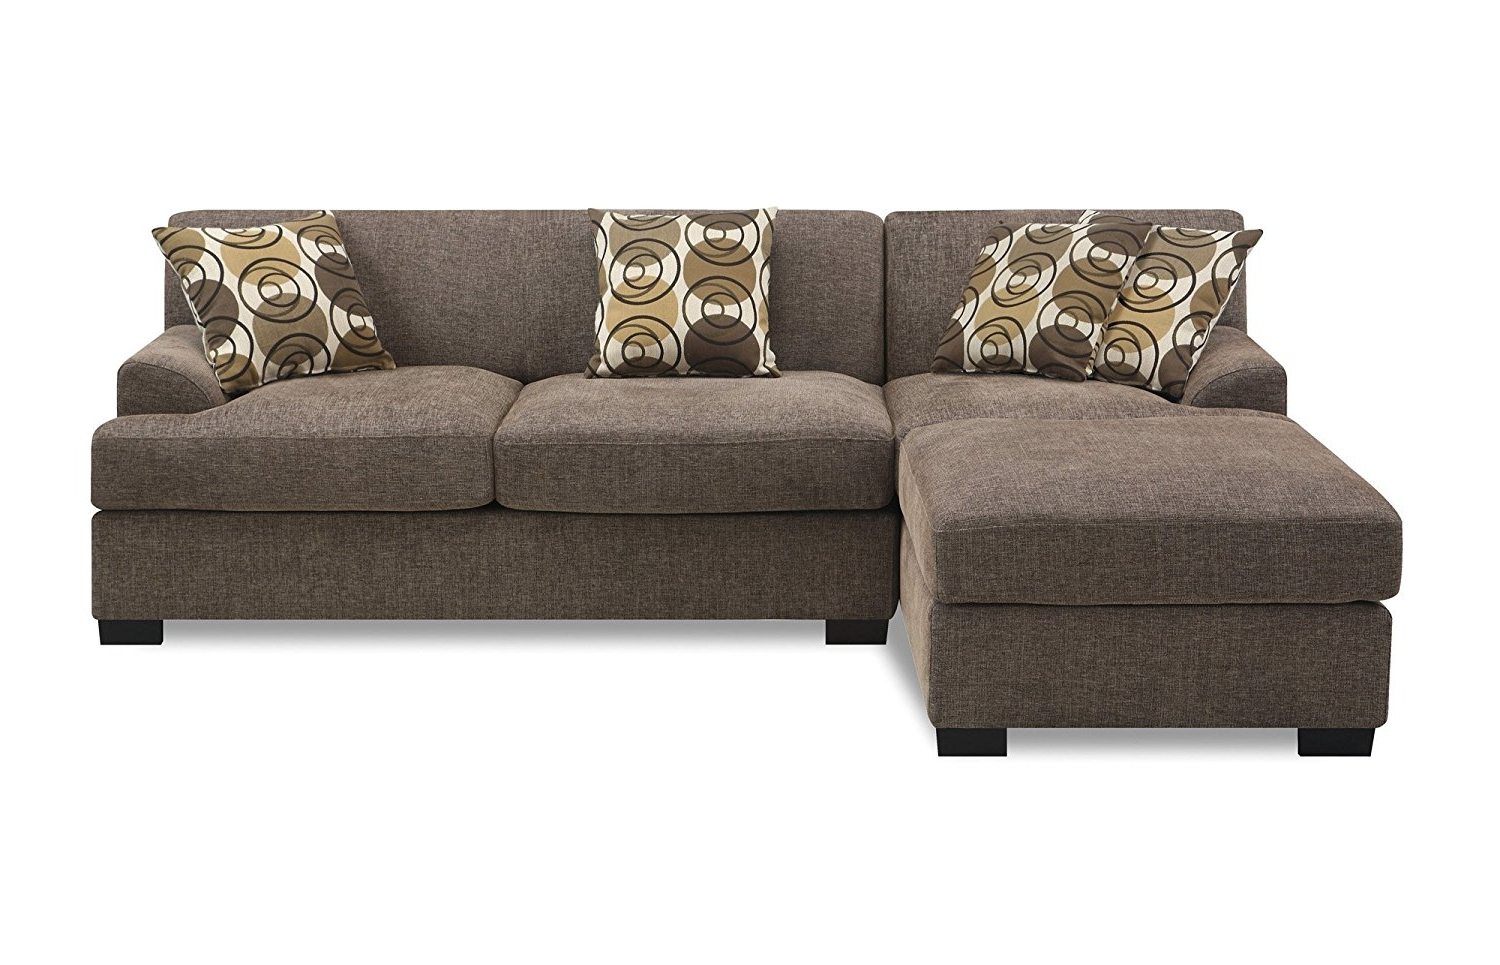 2 Piece Sectionals With Chaise In Most Up To Date Amazon: Poundex Montereal 2 Piece Chaise Love Sectional (View 14 of 15)